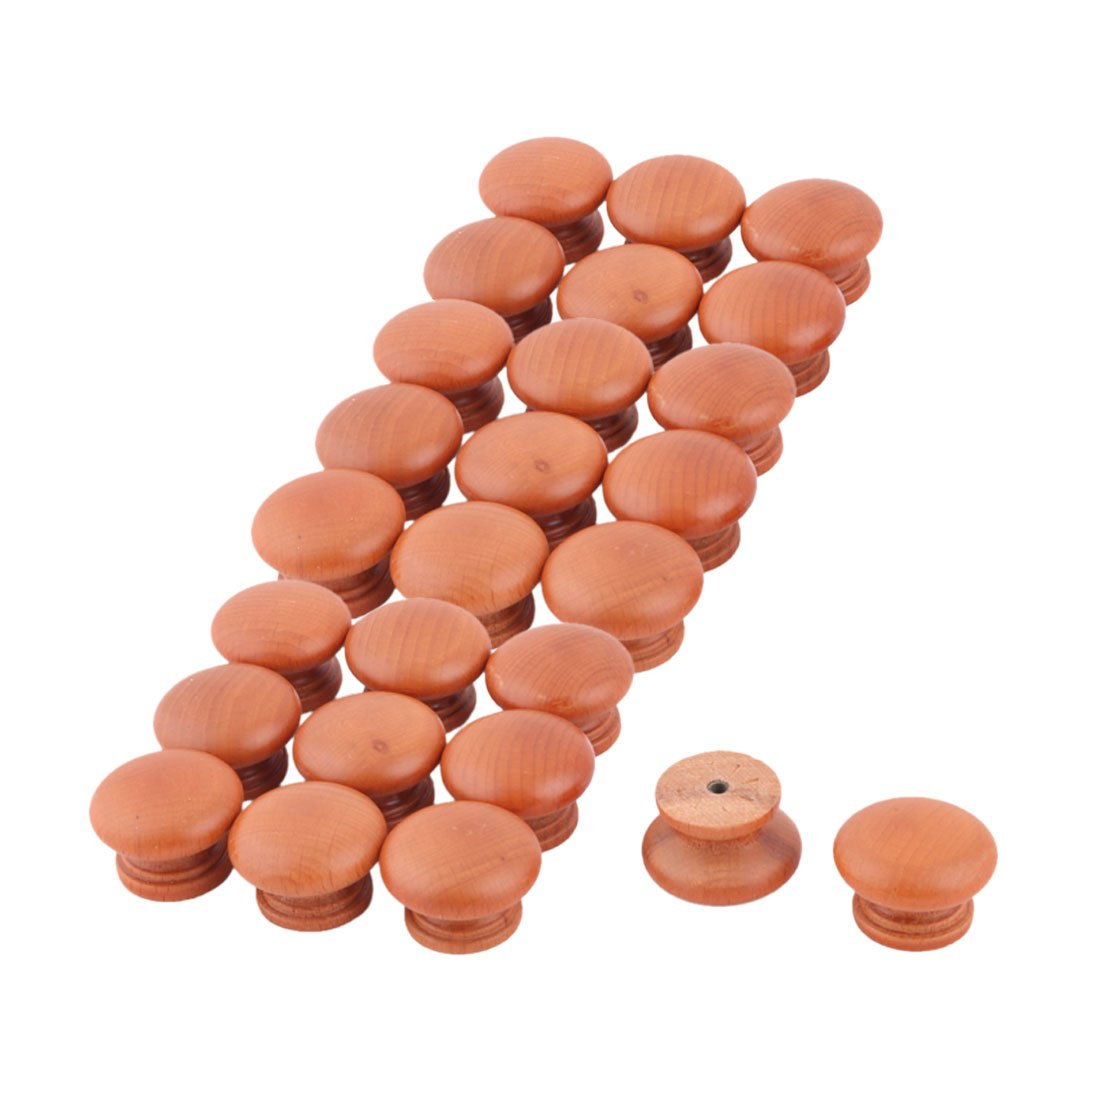 uxcell Wood Family Round Single Hole Garderobe Door Pull Handle Grip Knob 26pcs Brown